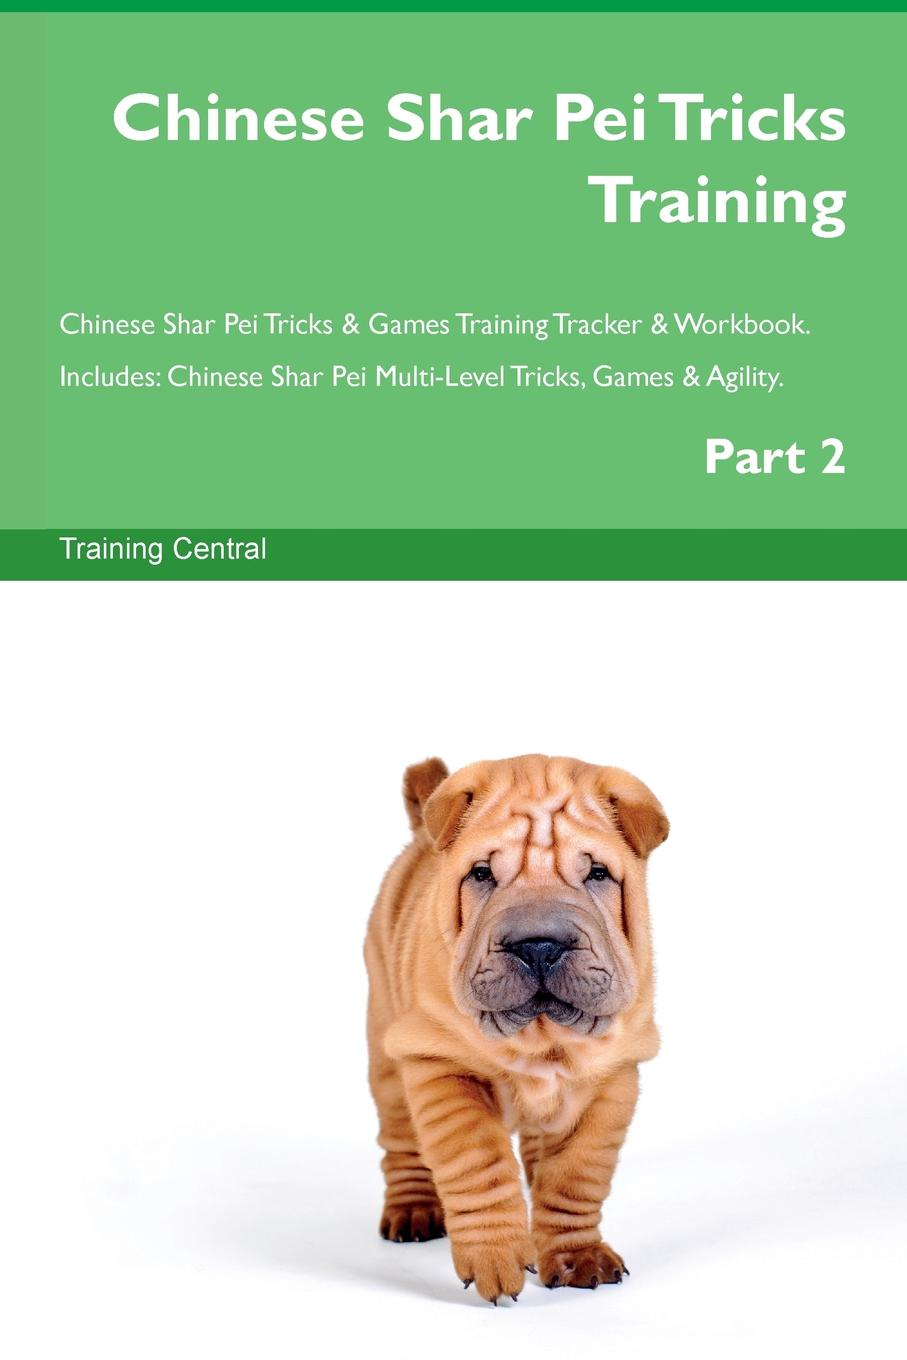 Training Central Chinese Shar Pei Tricks Training Chinese Shar Pei Tricks . Games Training Tracker . Workbook. Includes. Chinese Shar Pei Multi-Level Tricks, Games . Agility. Part 2 large 100cm shar pei dog plush toy stuffed toy doll christmas gift w4735